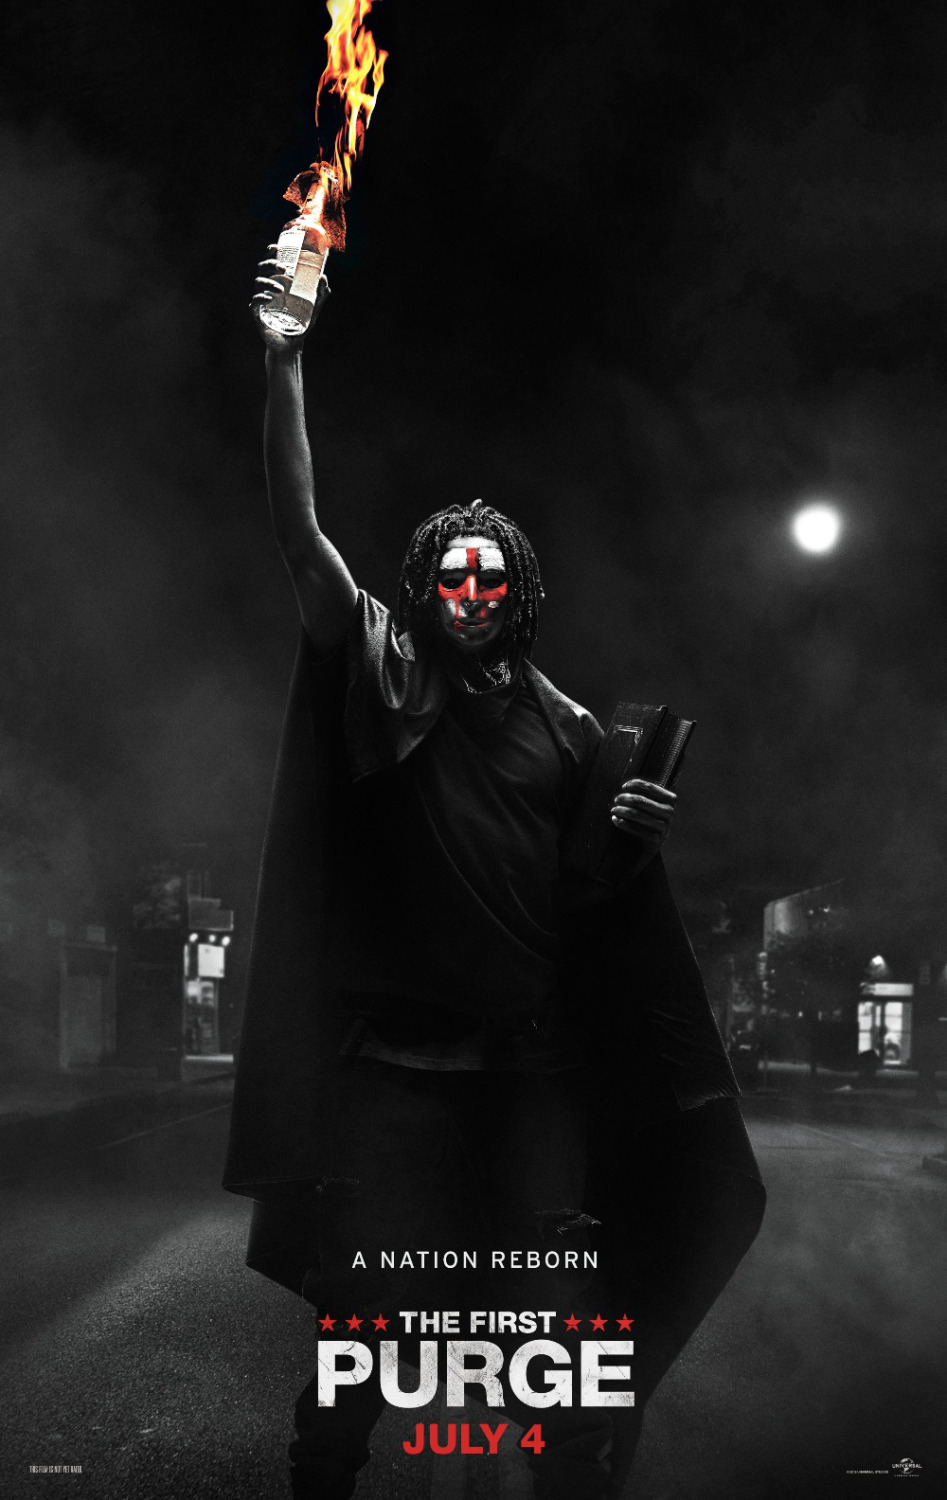 Review of The First Purge - Kathia Woods - This is the 4th installment of the First Purge. I have to be honest I wasn't really invested in the first three and agreed to view this because a colleague said its quite good. Low and behold it is. Gone is Ethan Hawke but we are introduced to new characters such as drug king/hero William portrayed by Y'lan Noel and activist Nya played by Lex Scott Davis. Rounding out the cast Joivan Wade who plays Nya brother Isaiah, Mugga as Dolores and Lauren Velez as Luisa.This movie introduces us to the architect of the Purge Dr. Updale depicted by Marisa Tomei. It's 2014, and the new admiration thinks America is overpopulated. So, they decided to focus on the poor, the disenfranchised, criminals and motivate them to turn on each other. Staten Island is the test group for the experiment. Money, the root of all evil, is the enticement. You stay you get paid, you roam you get paid, and you kill you get paid.This movie is very in step with the current political climate which is accosting the same people targeted in this movie. The concept is not far fetched, and history has shown how the government has interfered in keeping the poor more impoverished. The first purge demonstrates that all though folks are poor and feeling disconnect doesn't mean that they lack morals and hence the experiment is manipulated. The idea that poor people have morals was never considered so, in turn, the agitators were pulled in to produce the result they wanted. In the end, money is not everything. Friends matter, the community matter, and poverty don't turn everyone into criminals.